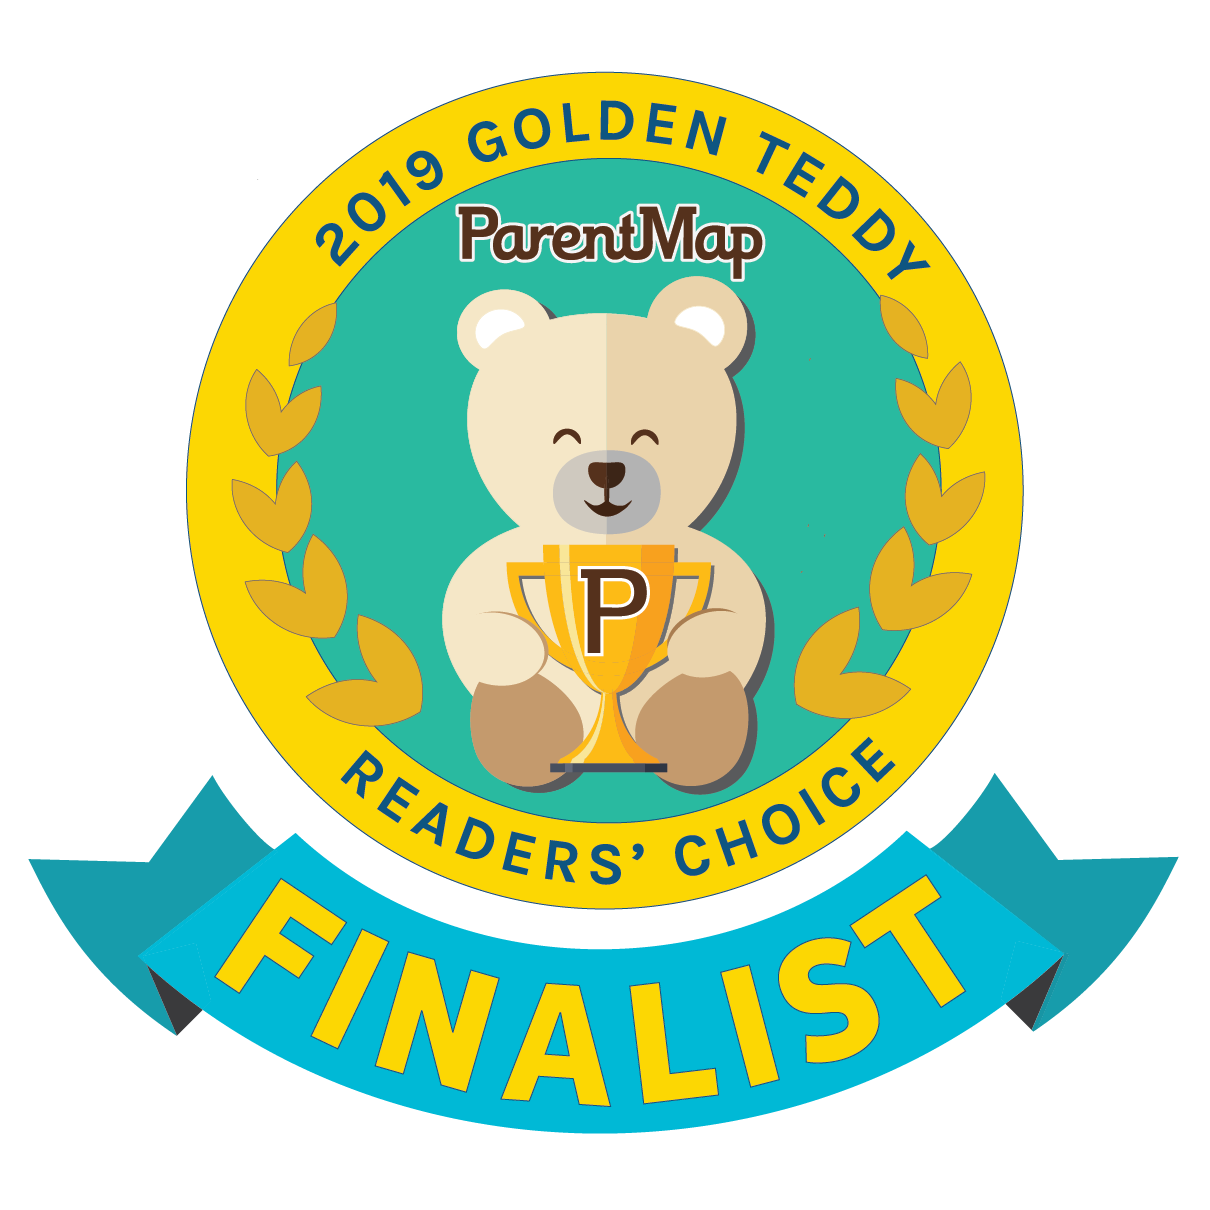 gt-finalist-badge-01.png